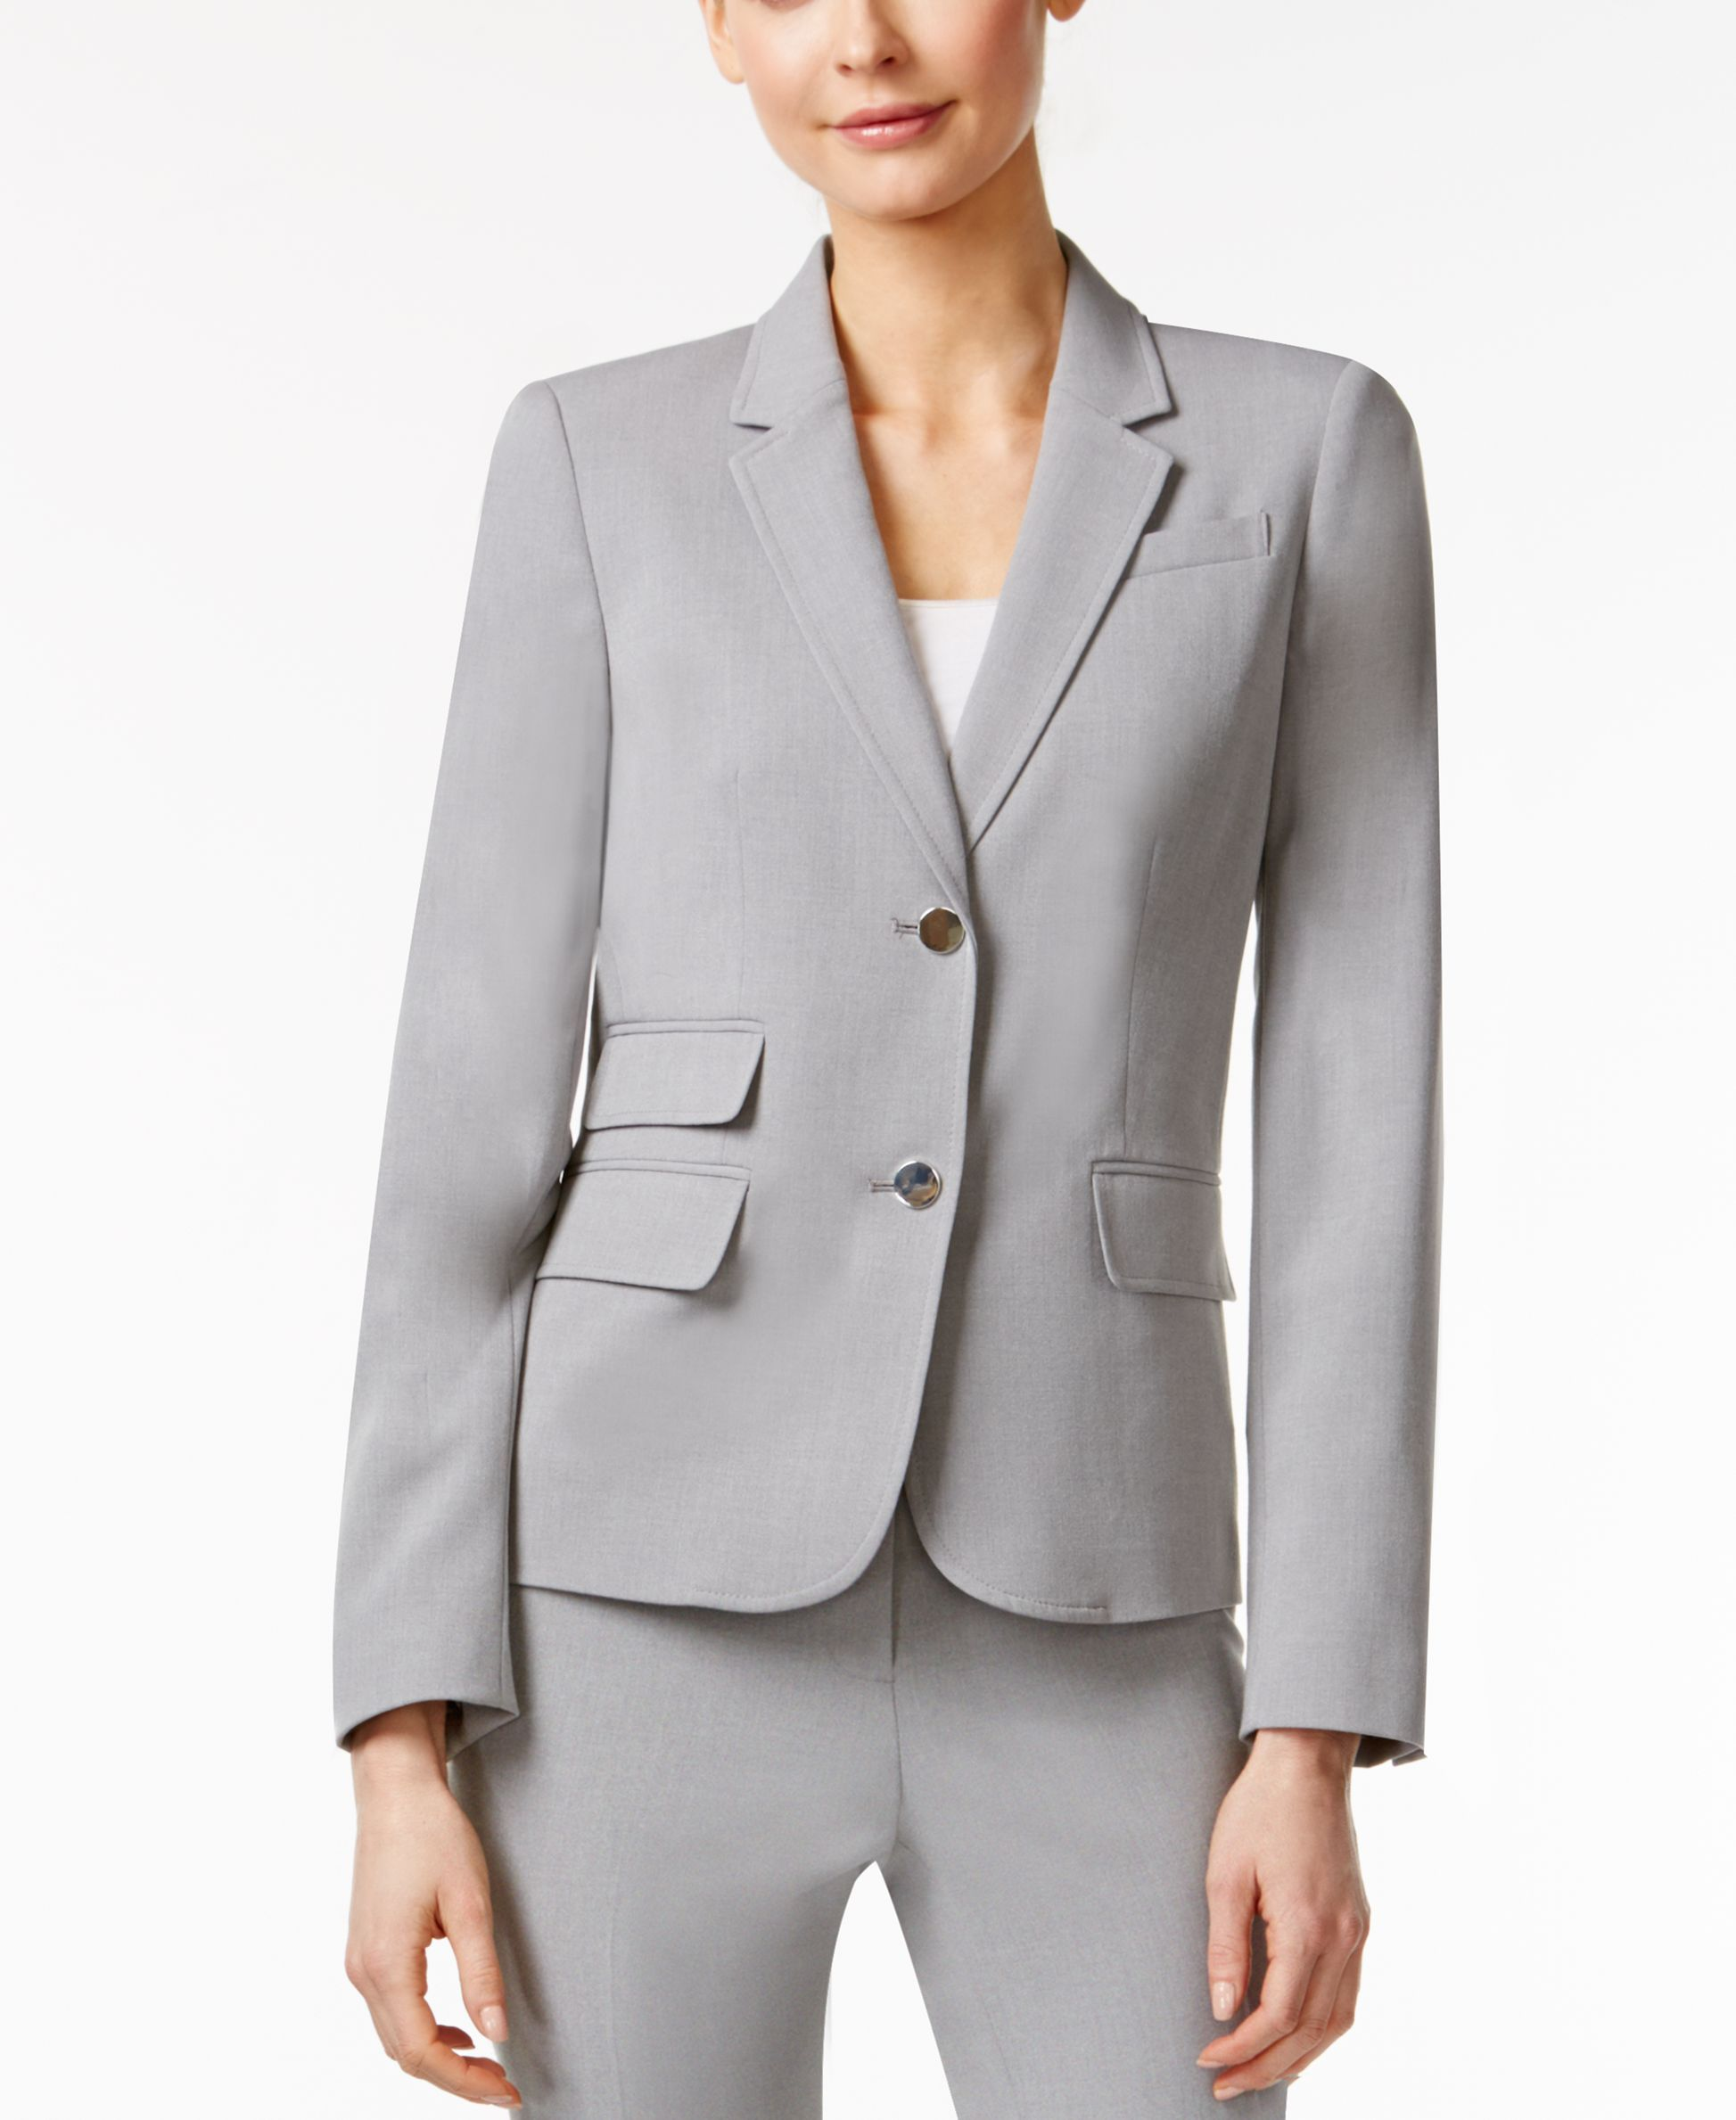 0b083e87cee99 Get classic and polished office appeal in this Calvin Klein blazer.    Polyester  lining  polyester rayon spandex   Dry clean   Imported   Two  button ...